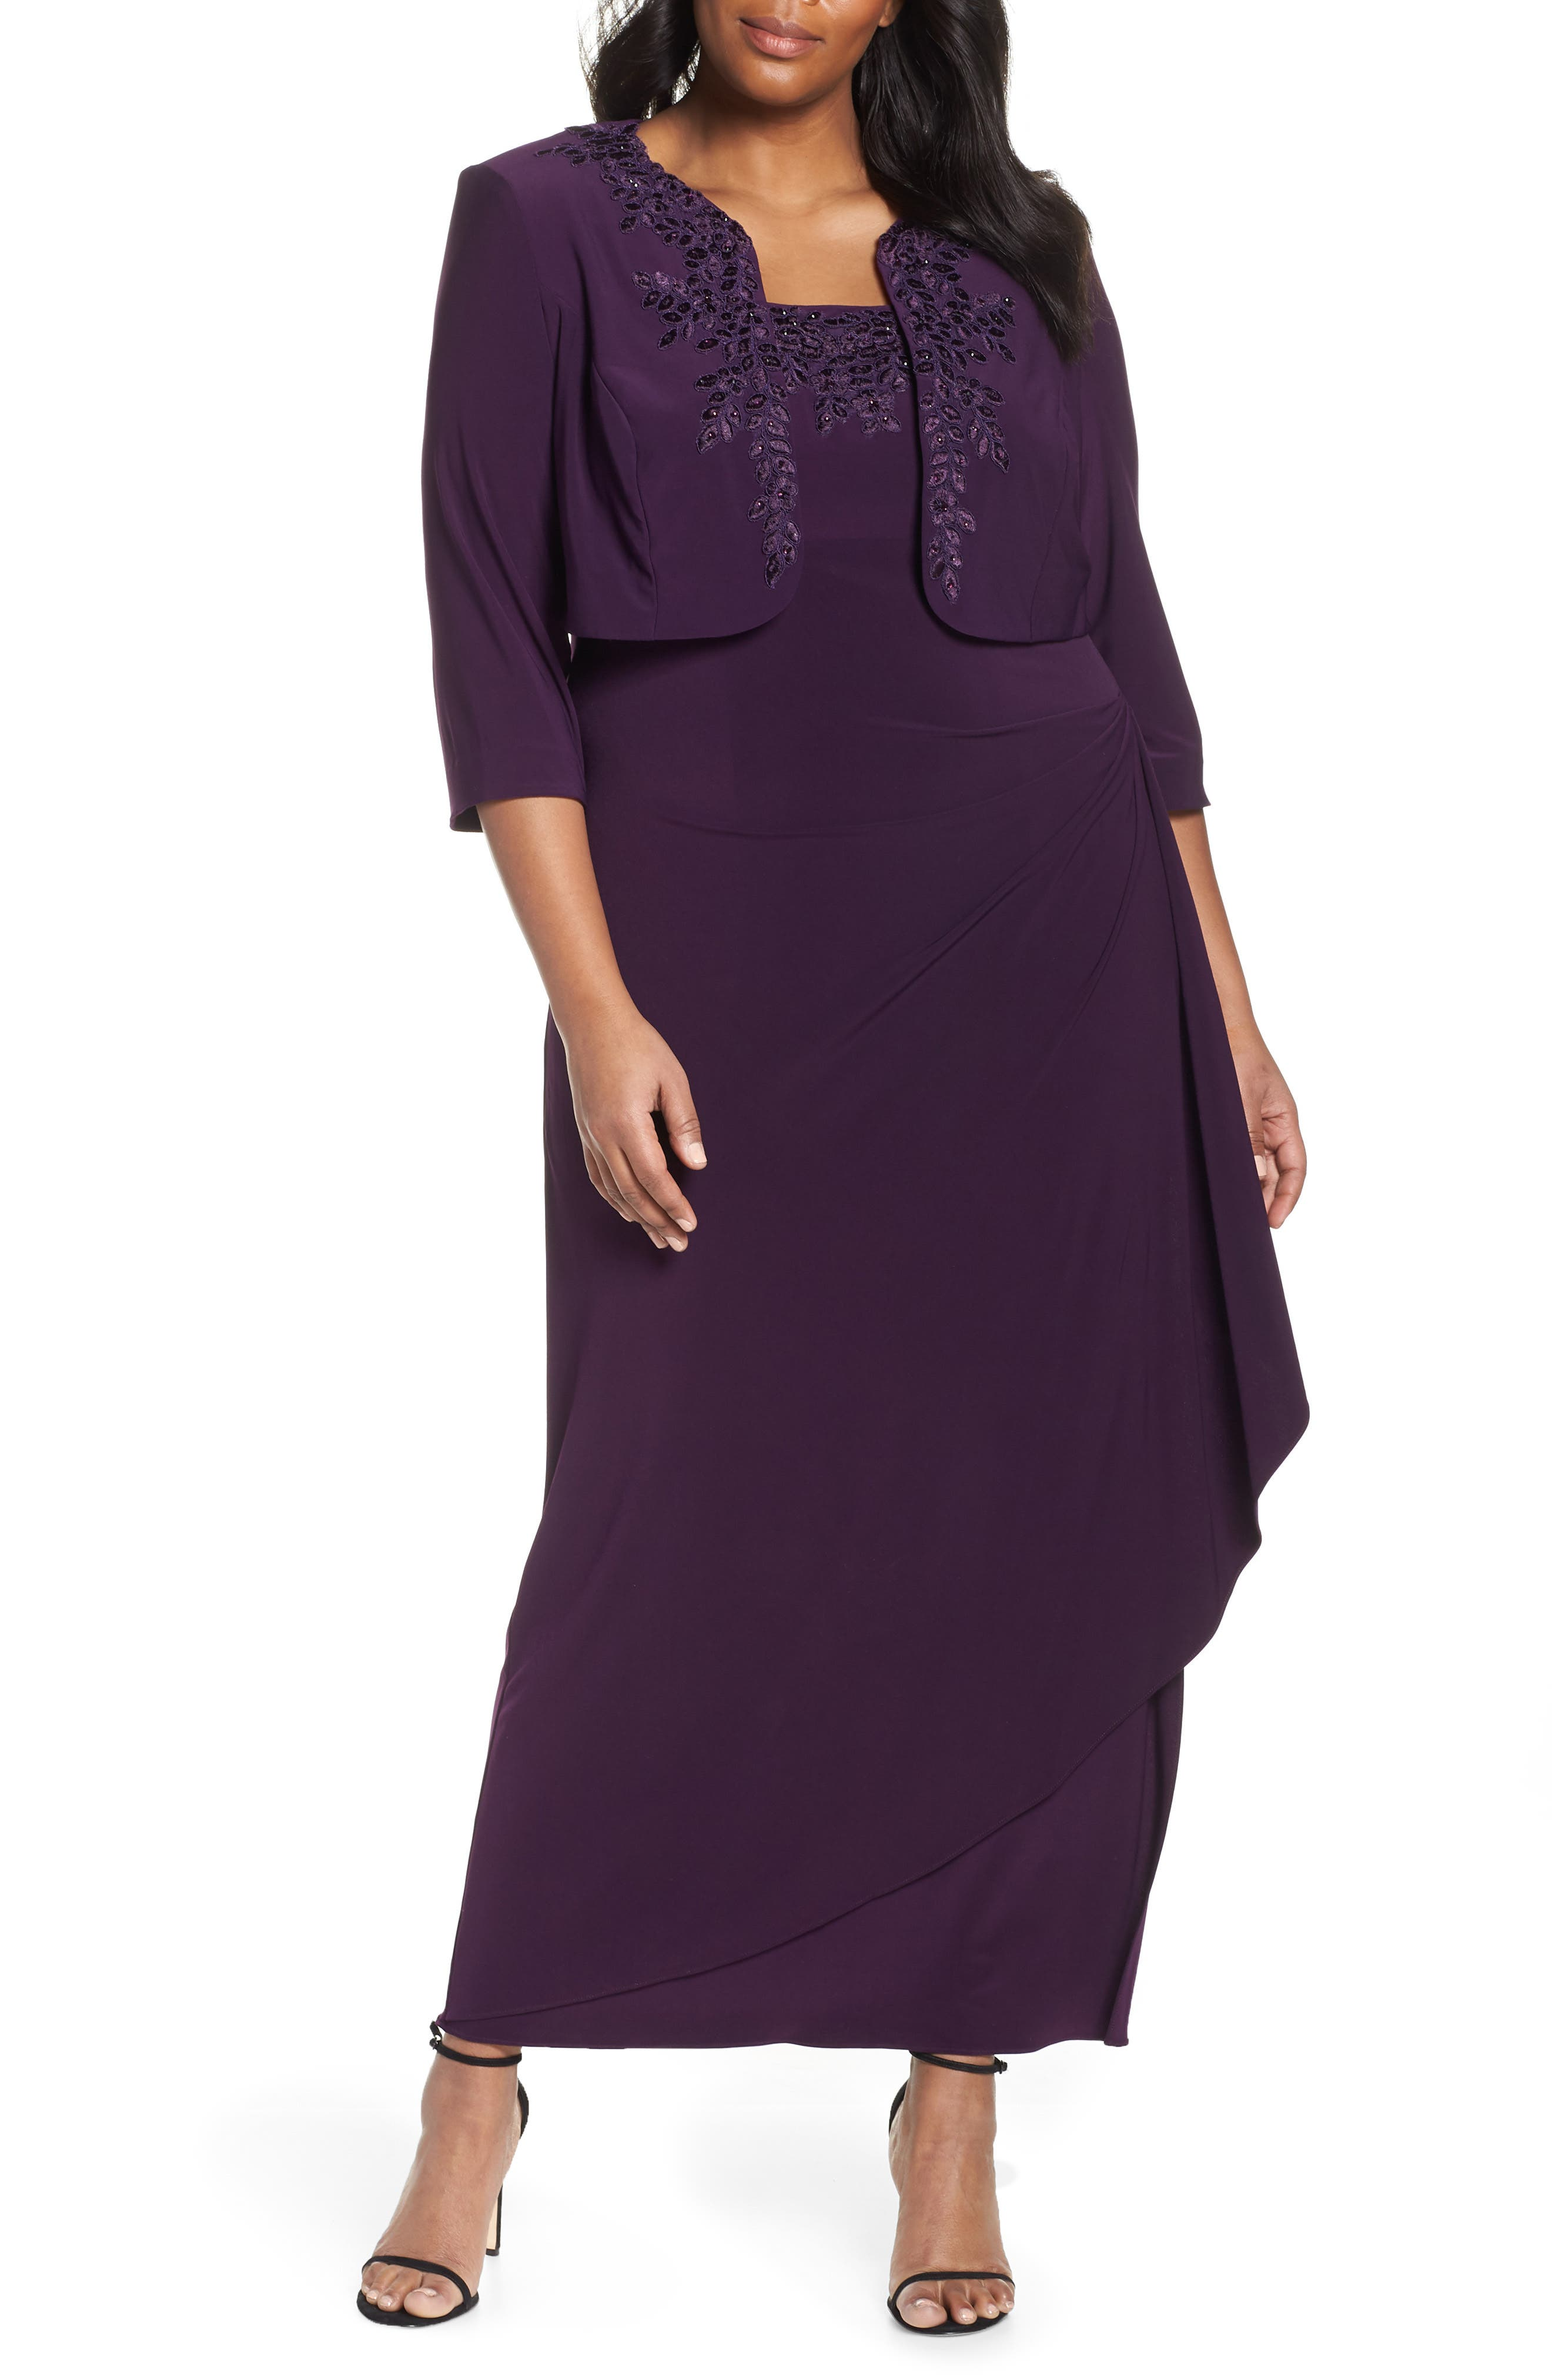 Plus Size Alex Evenings Side Ruched Evening Dress With Bolero, Purple